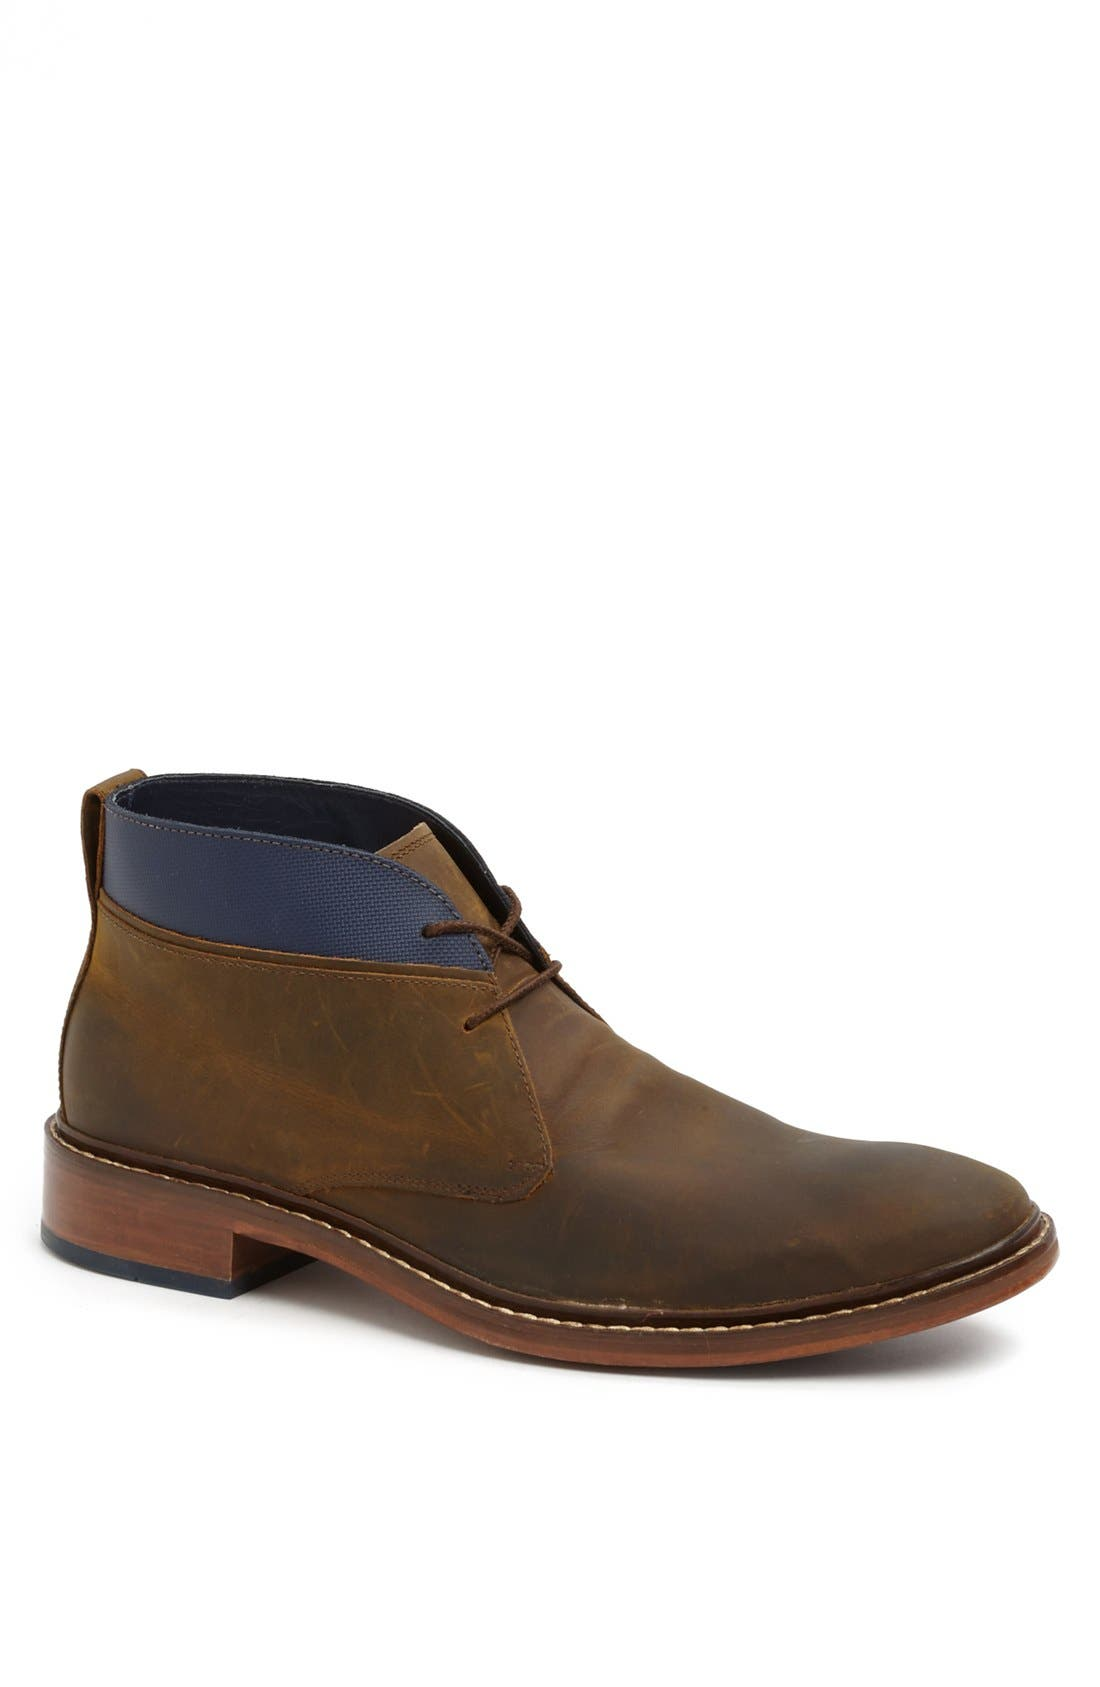 'Colton' Chukka Boot,                         Main,                         color, COPPER/ PEACOAT LEATHER